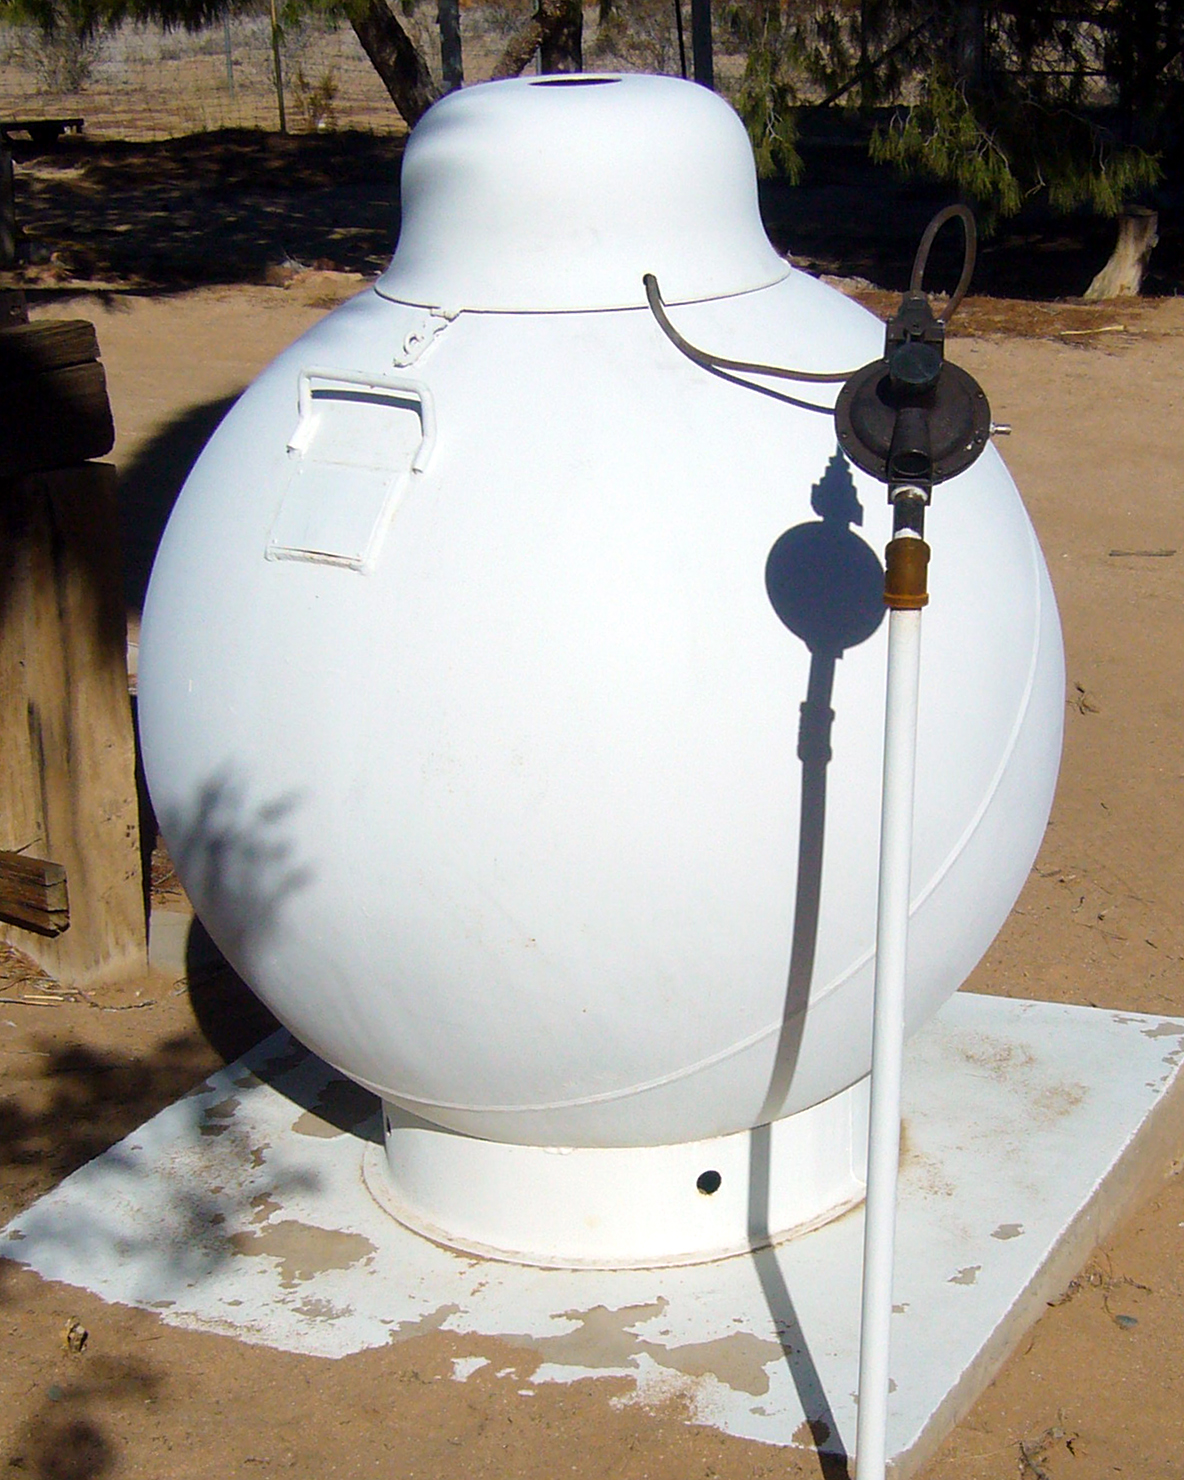 File:150 gallon Propane Tank.jpg - Wikimedia Commons